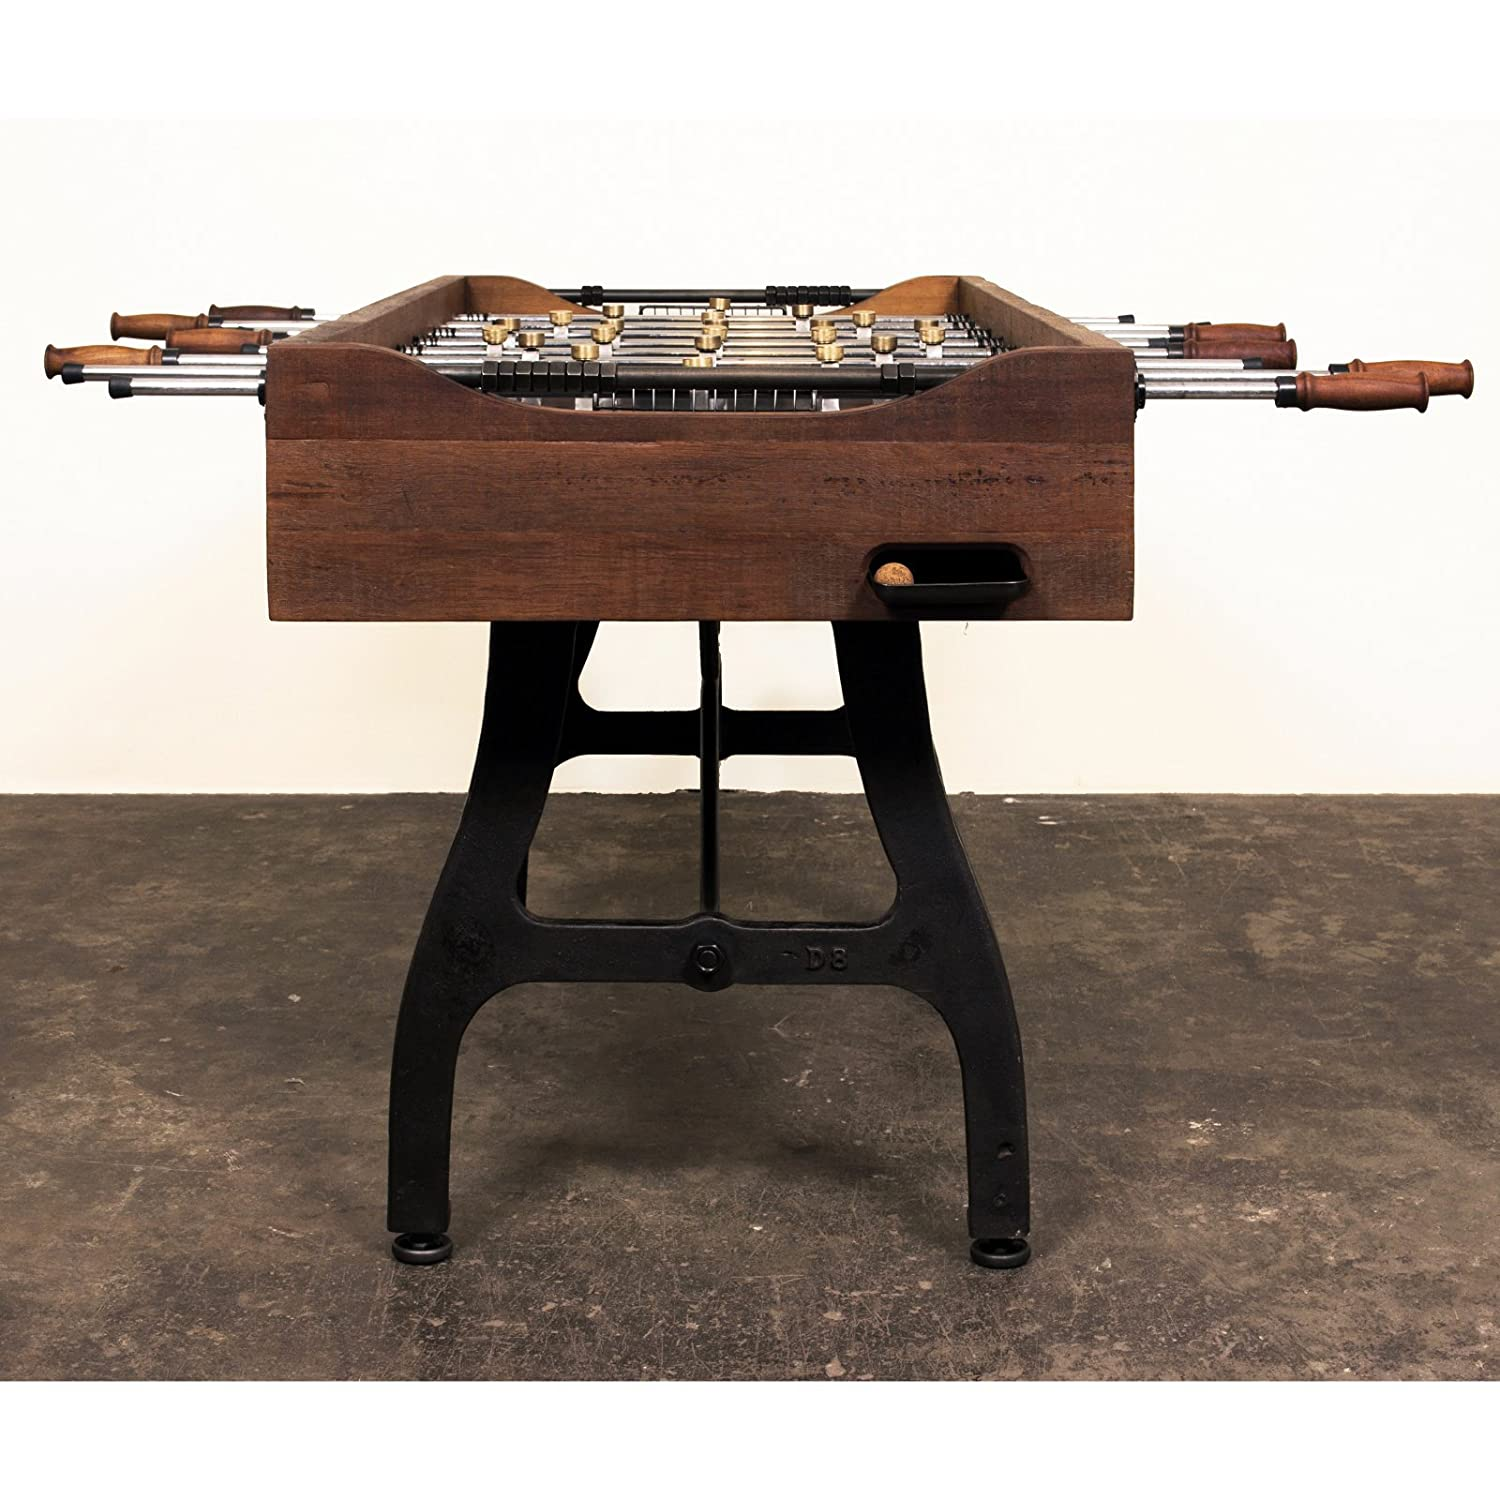 foosball game table in reclaimed hardwood by nuevo  hgda  - foosball game table in reclaimed hardwood by nuevo  hgda amazoncasports  outdoors